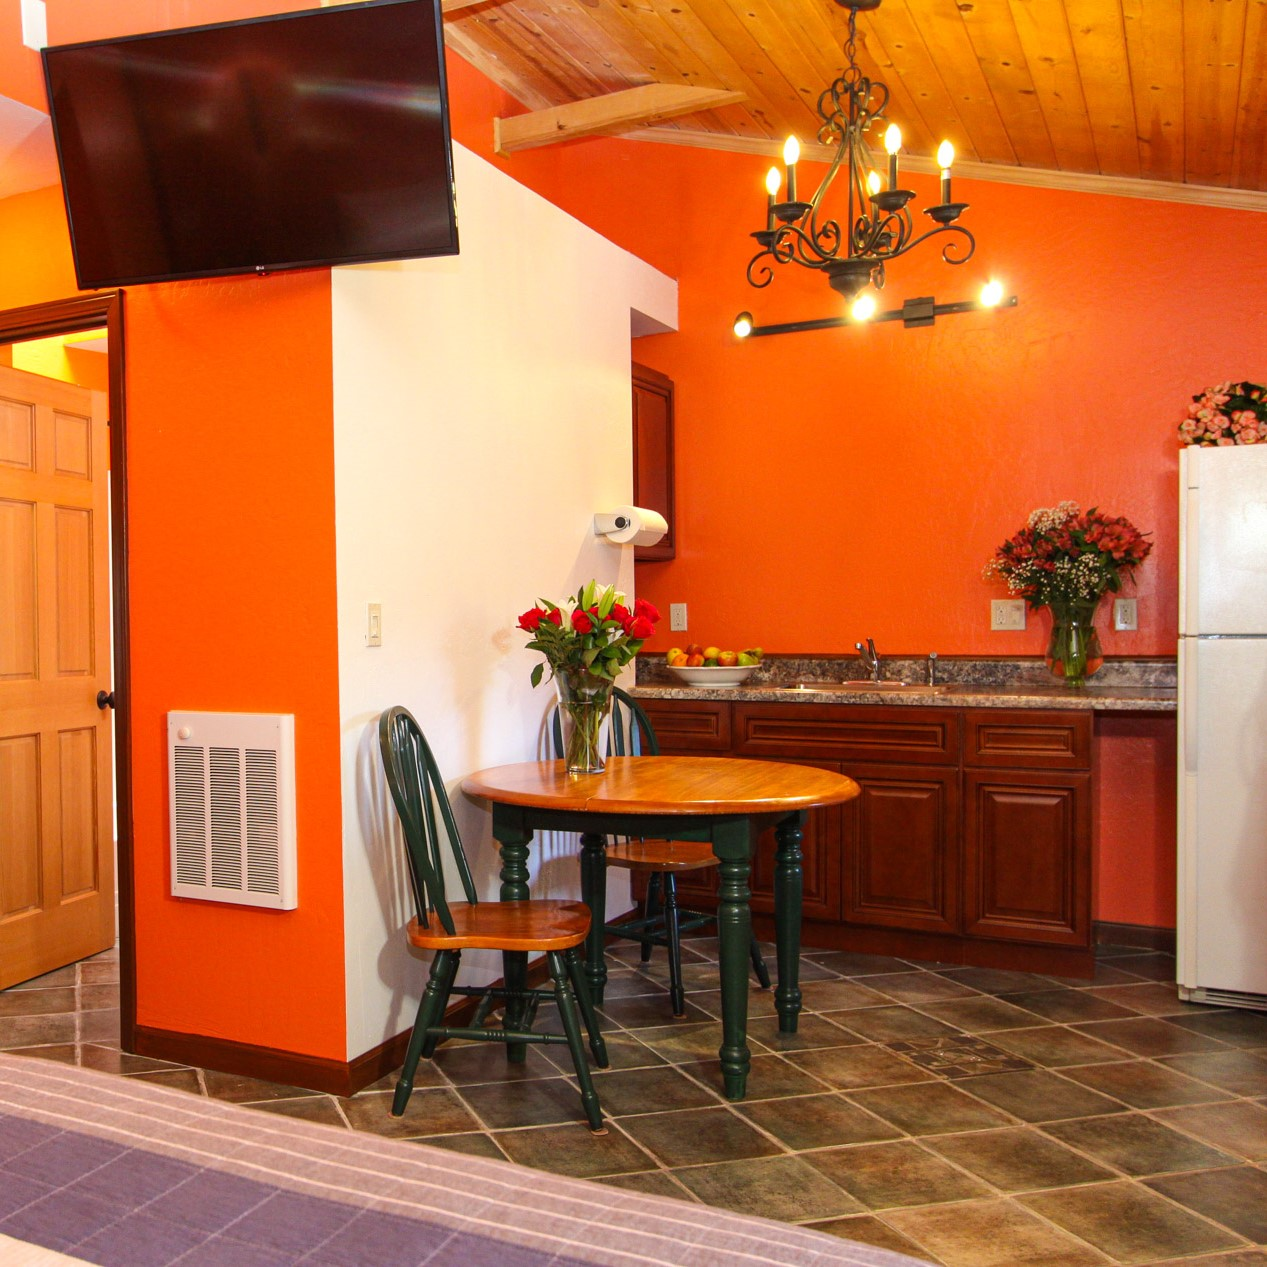 guest room kitchen at the woods cottages & cabins at the russian river in guerneville